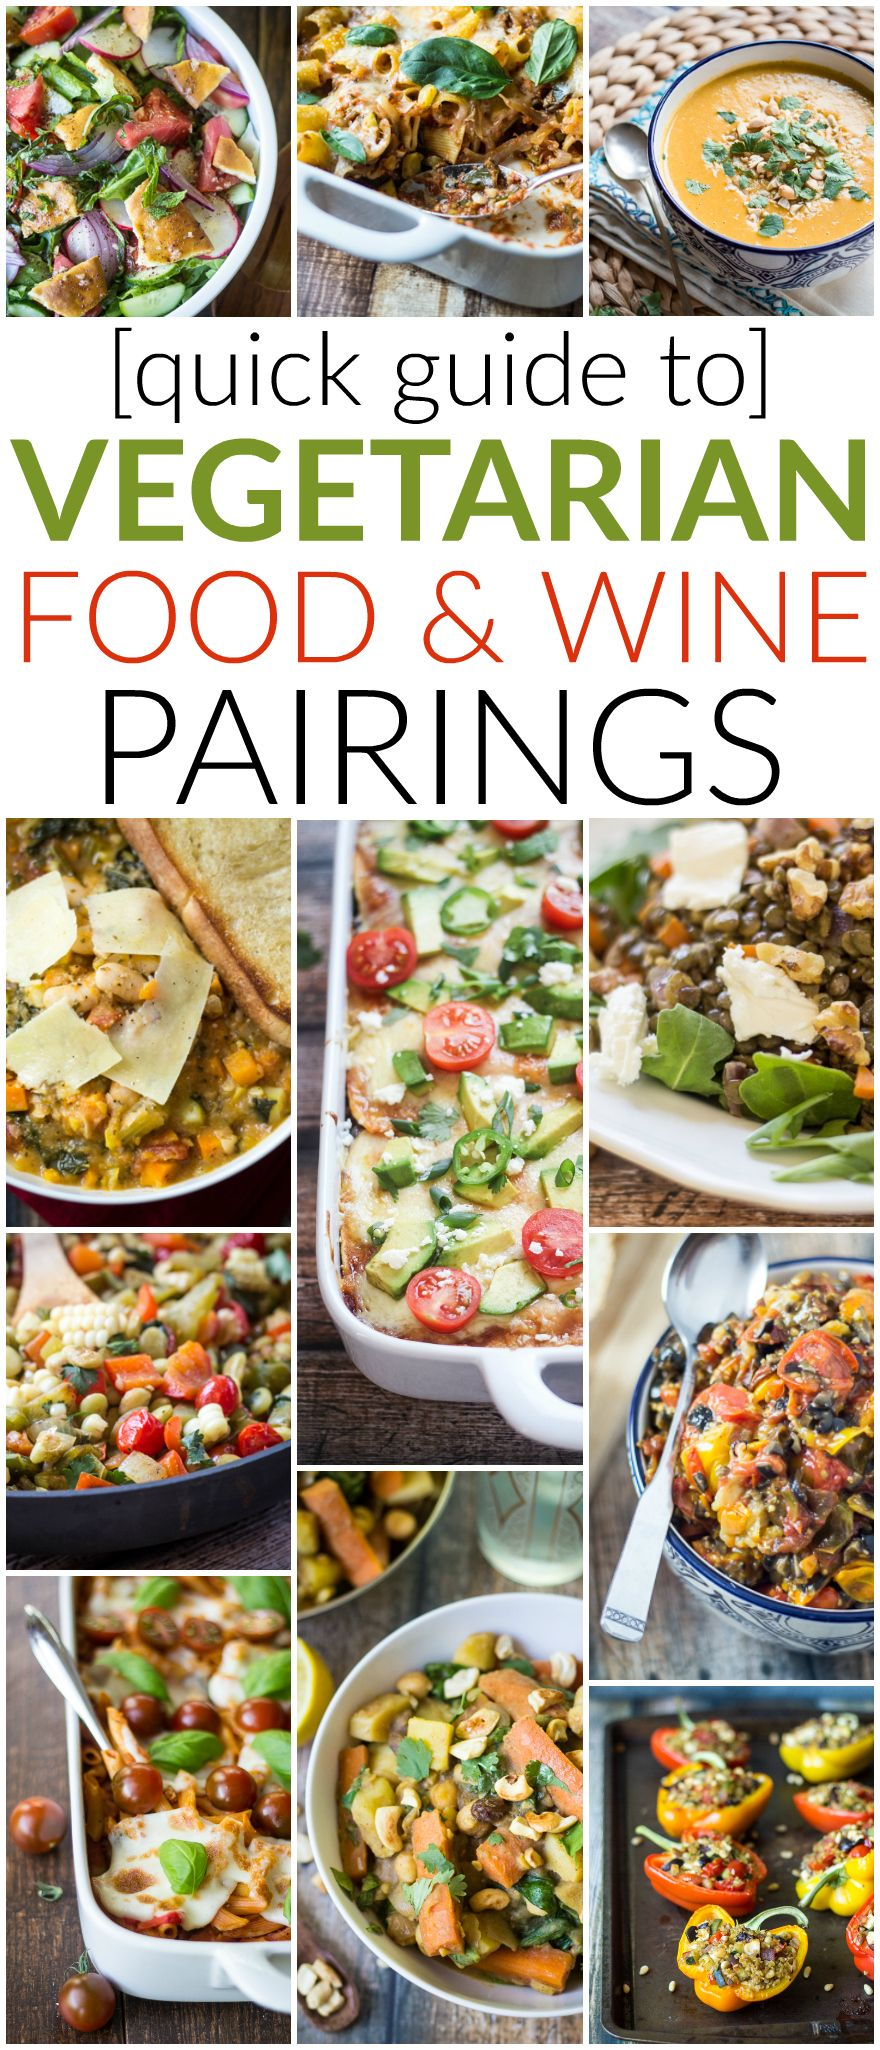 Quick guide to vegetarian wine pairings wine pairings vegetarian red wine with beef white wine with fish right what about vegetarian recipes check out this quick guide to vegetarian wine pairings for recommendations forumfinder Image collections